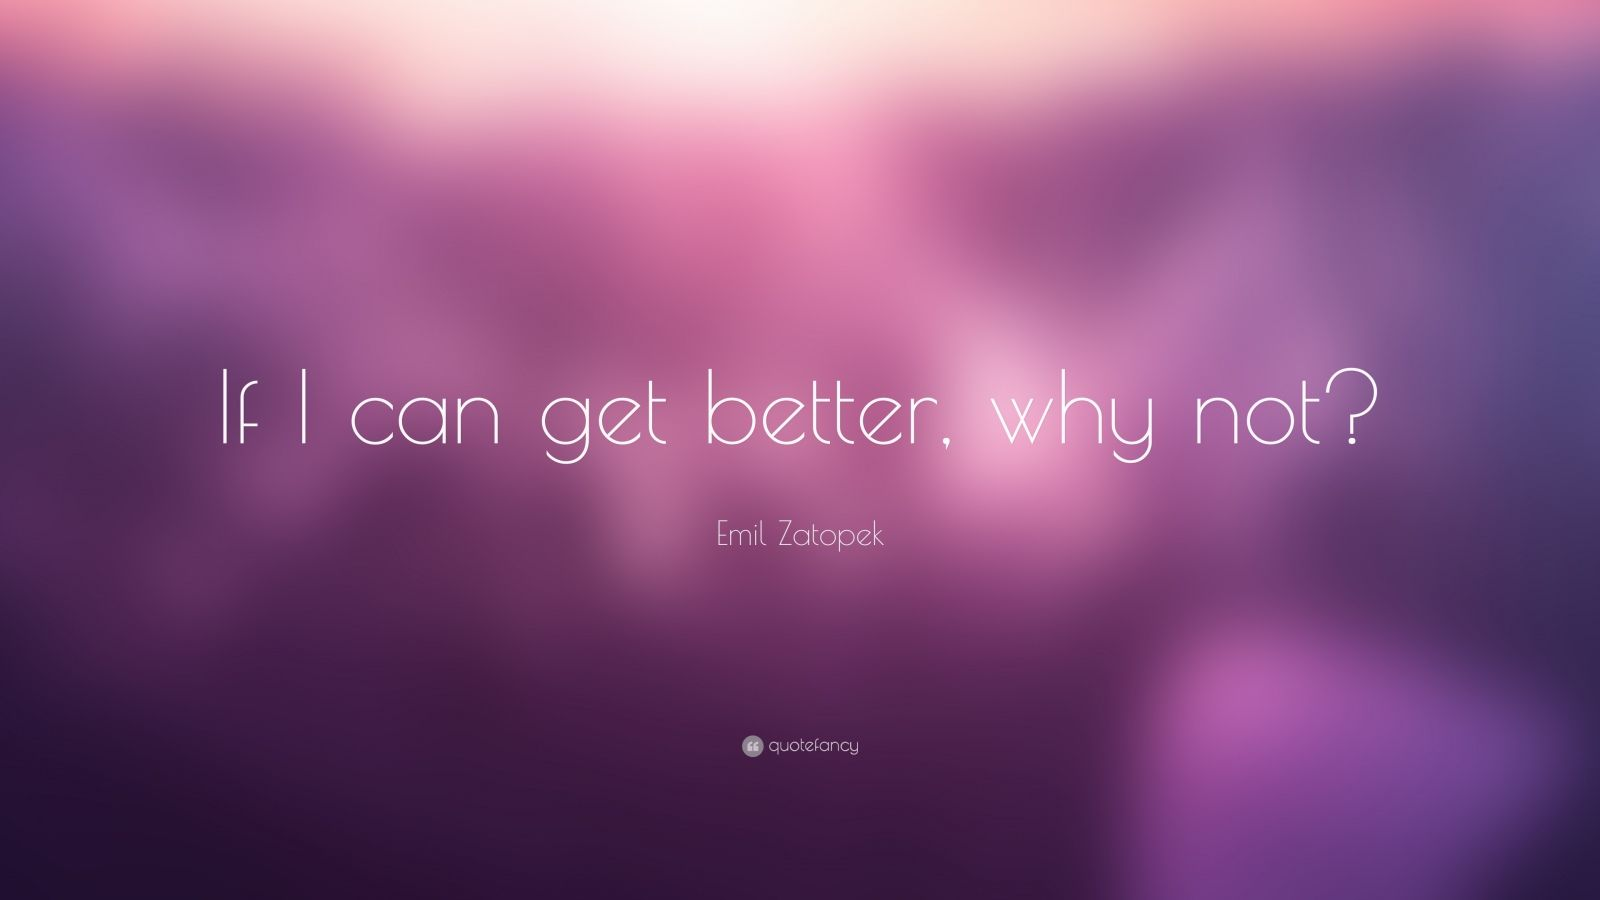 Emil zatopek quotes 23 wallpapers quotefancy for Where can i get wallpaper